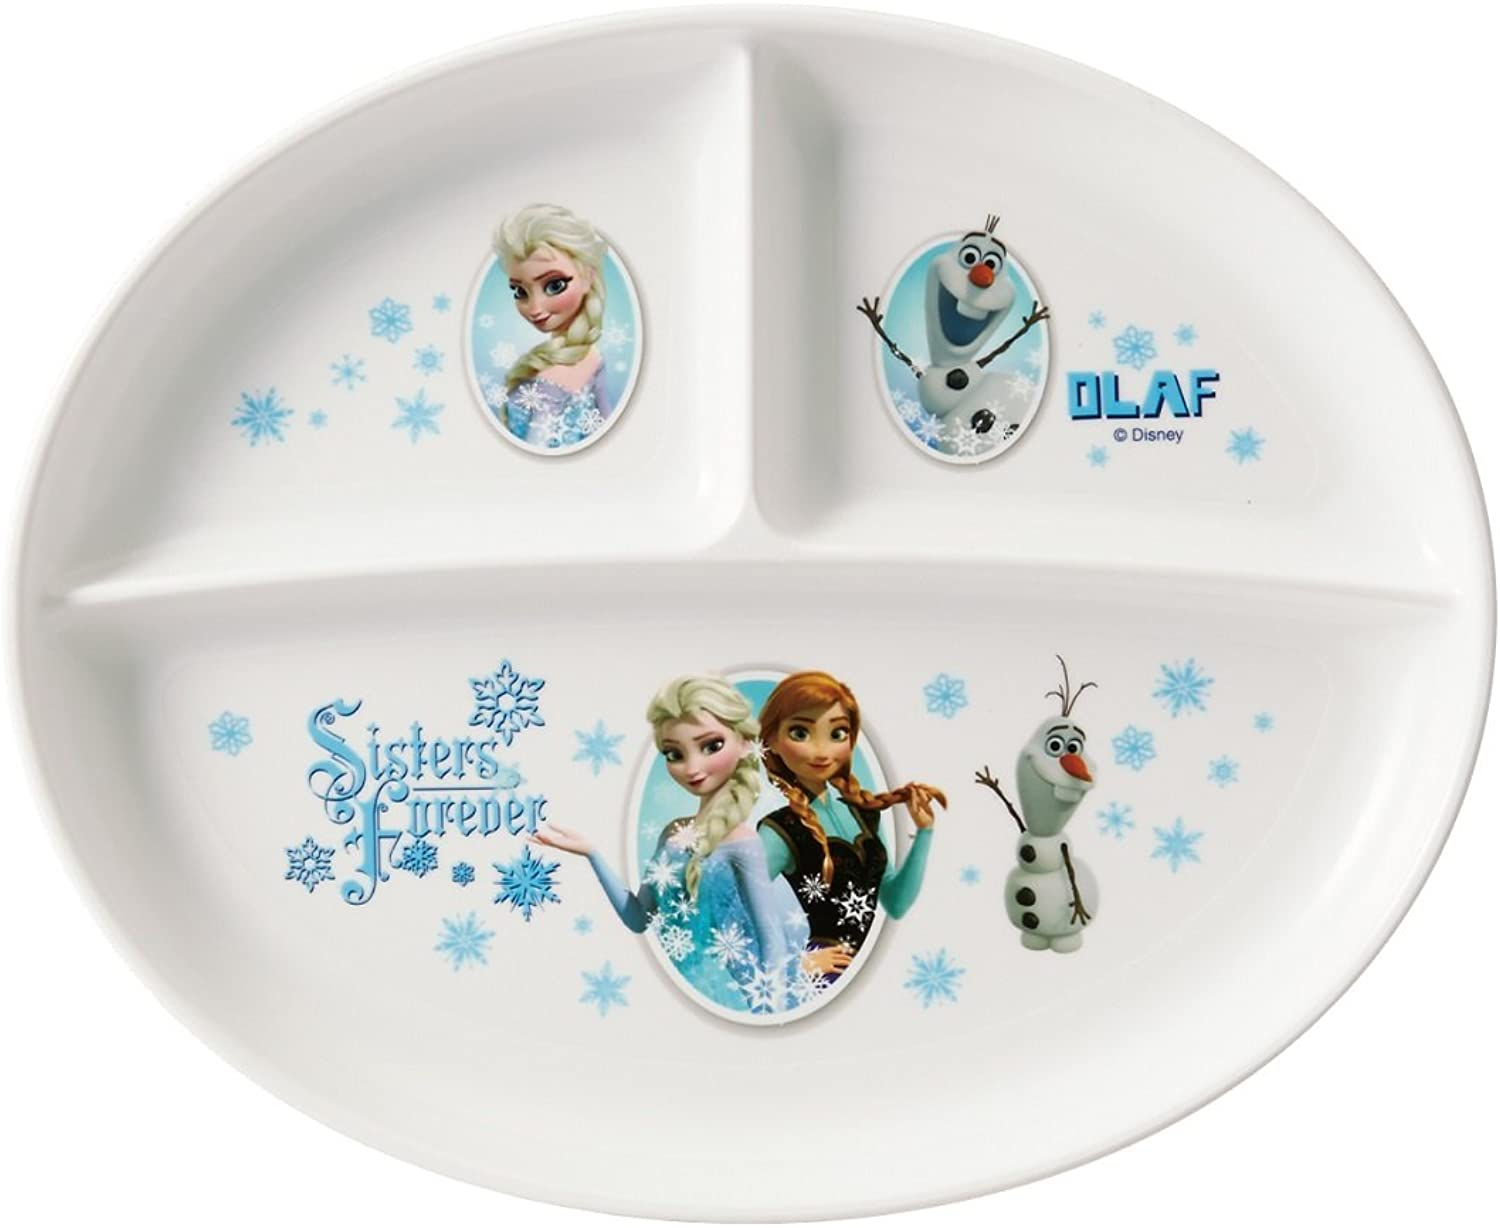 Lunch plate Ana and the Snow Queen Frozen Disney Washable in Dishwasher